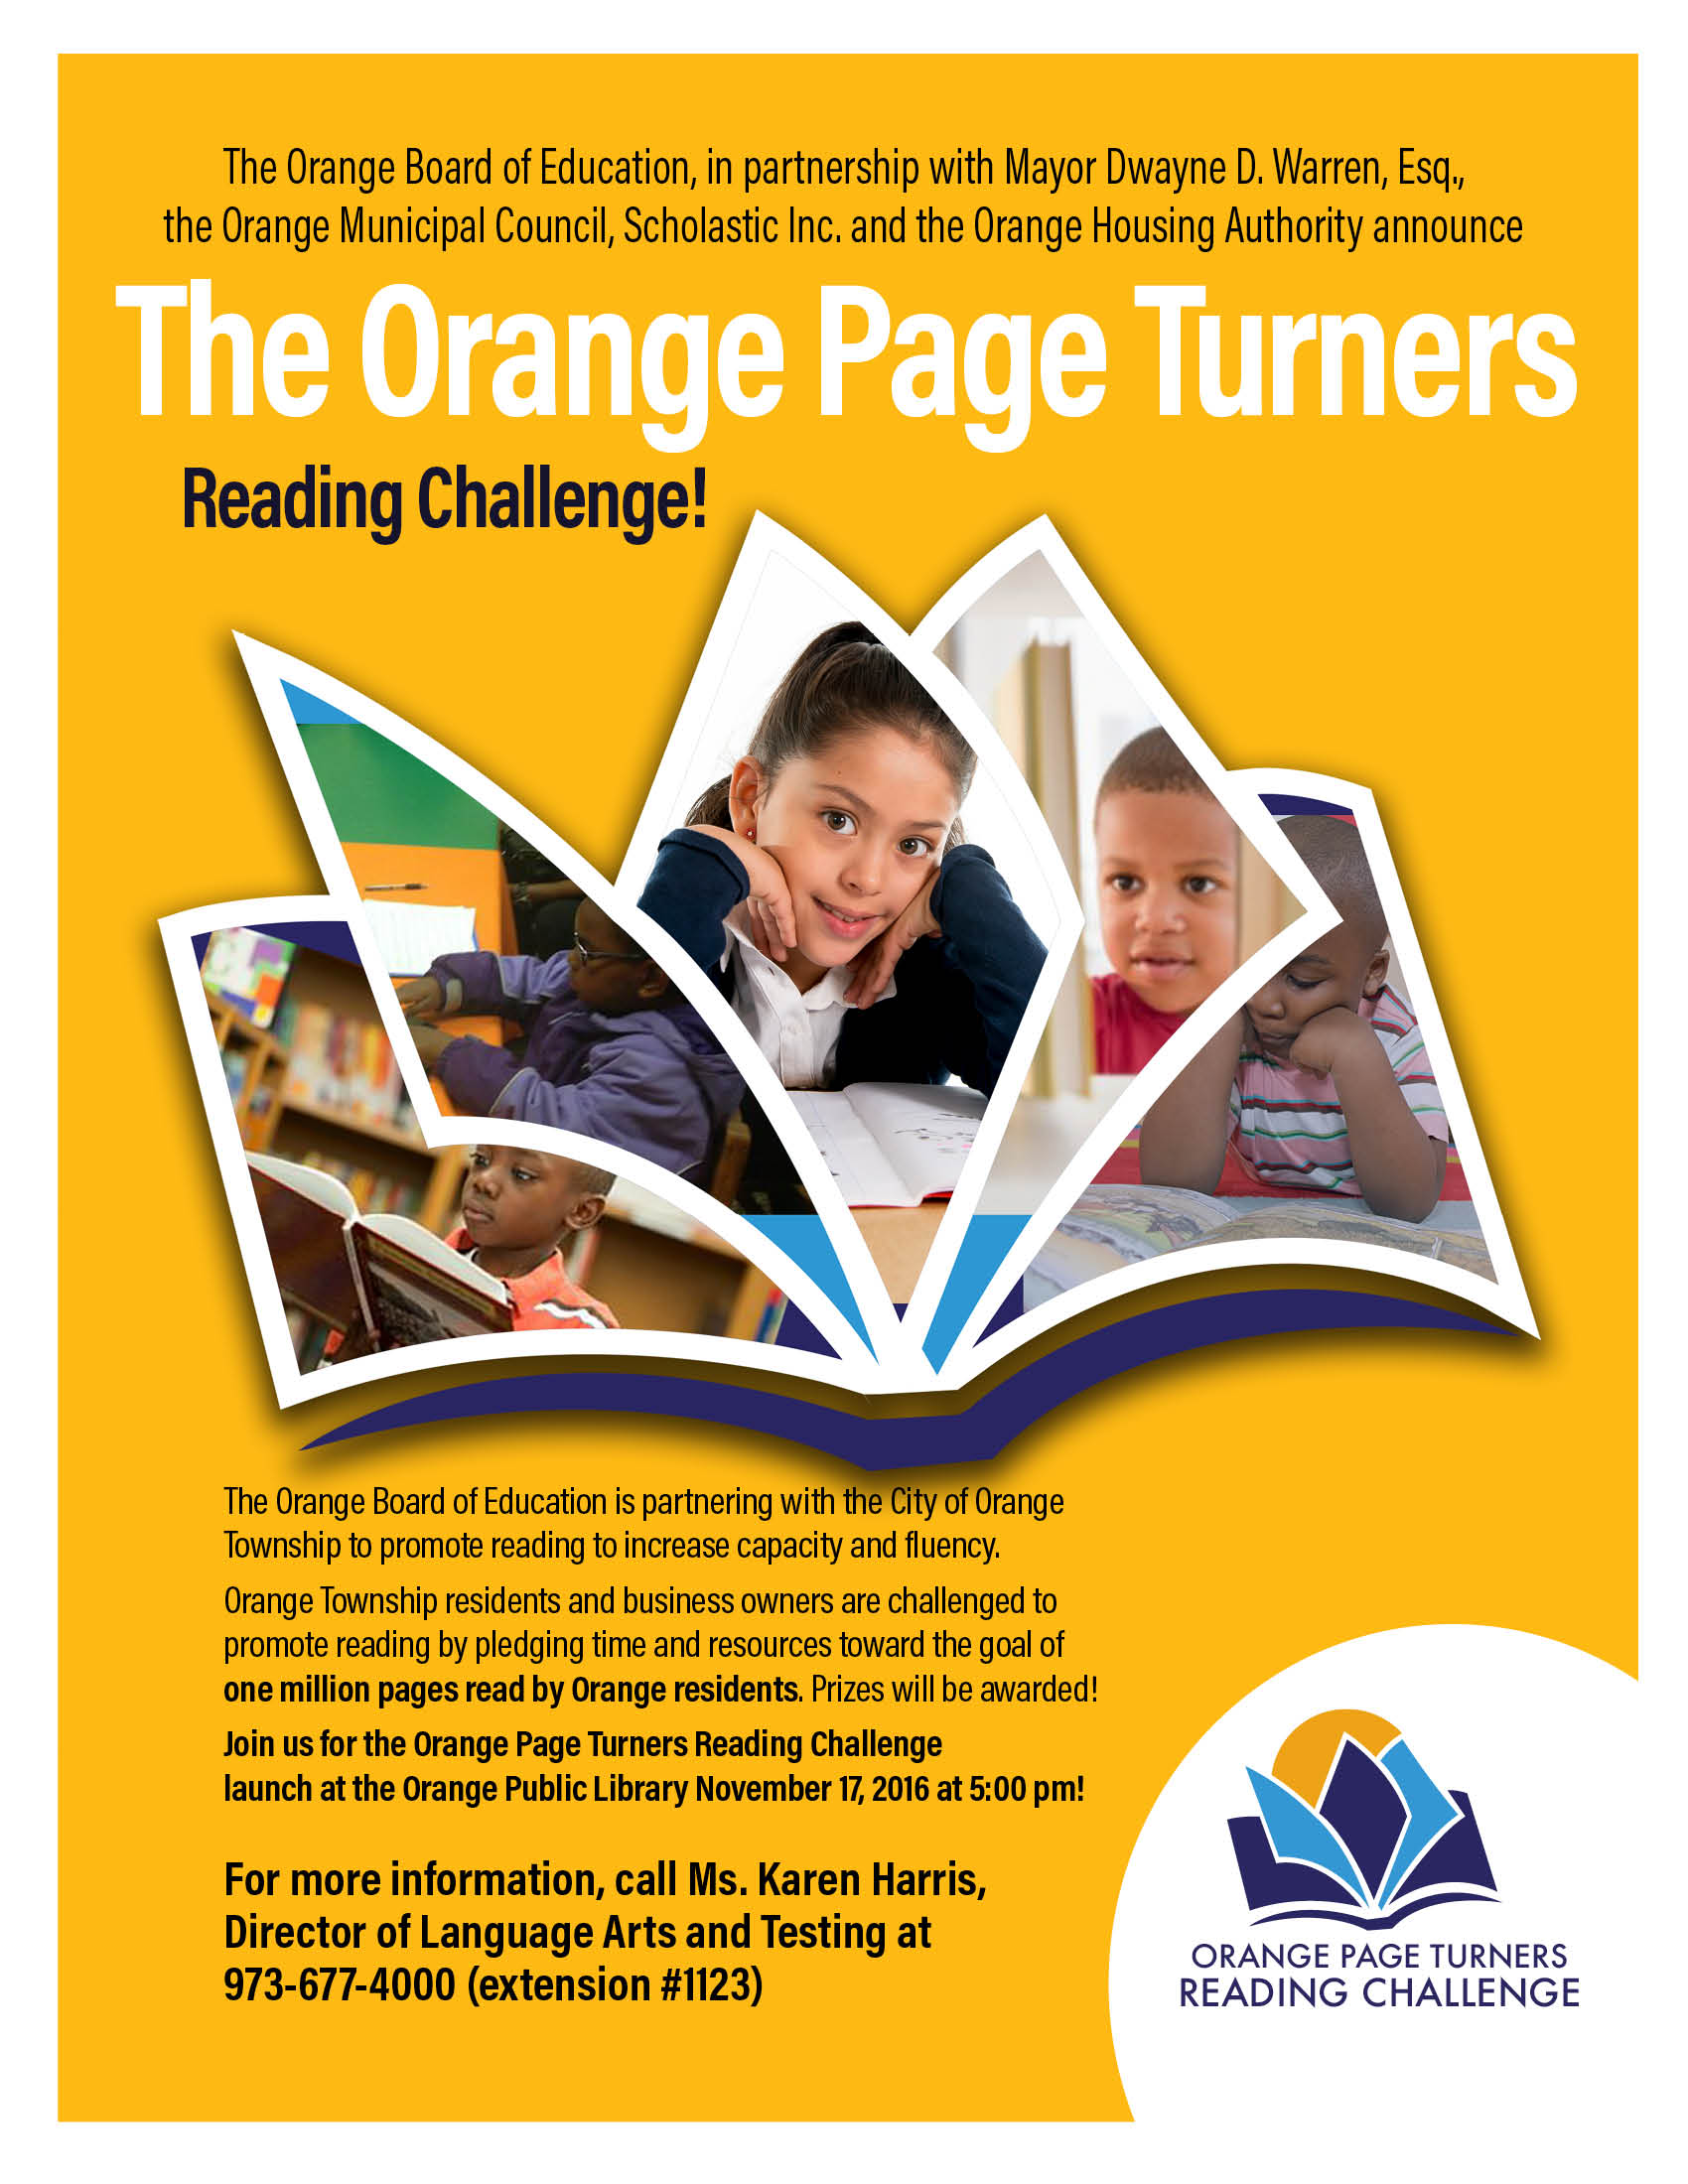 The Orange Page Turners